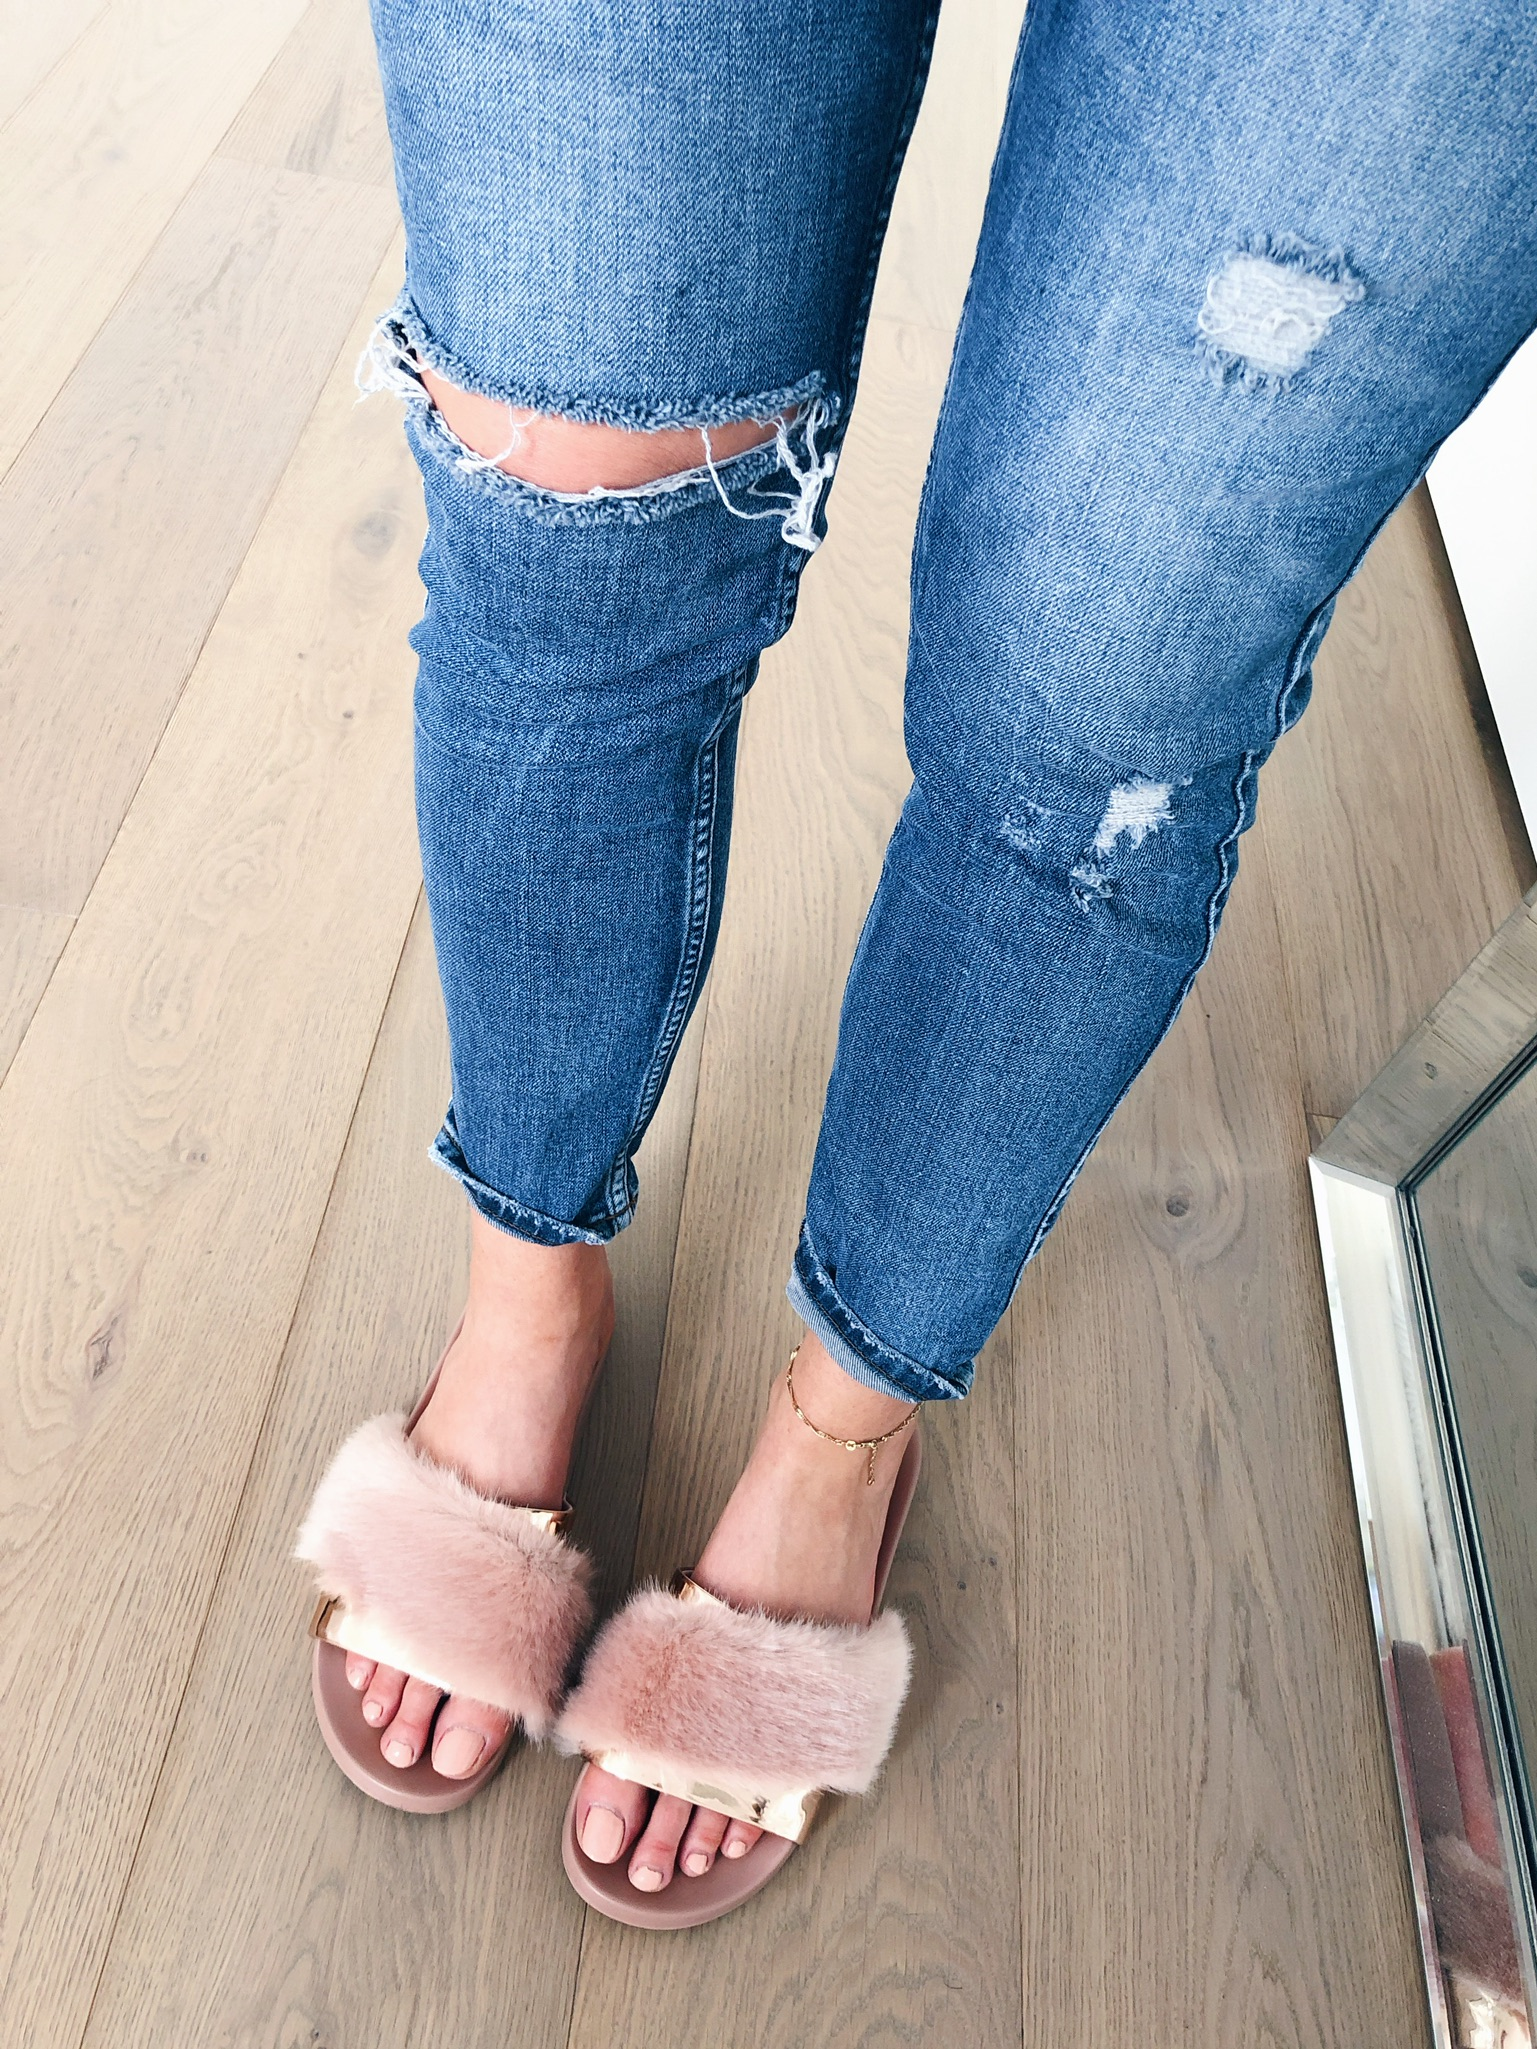 1 person, from where I stand, fur slides and jeans